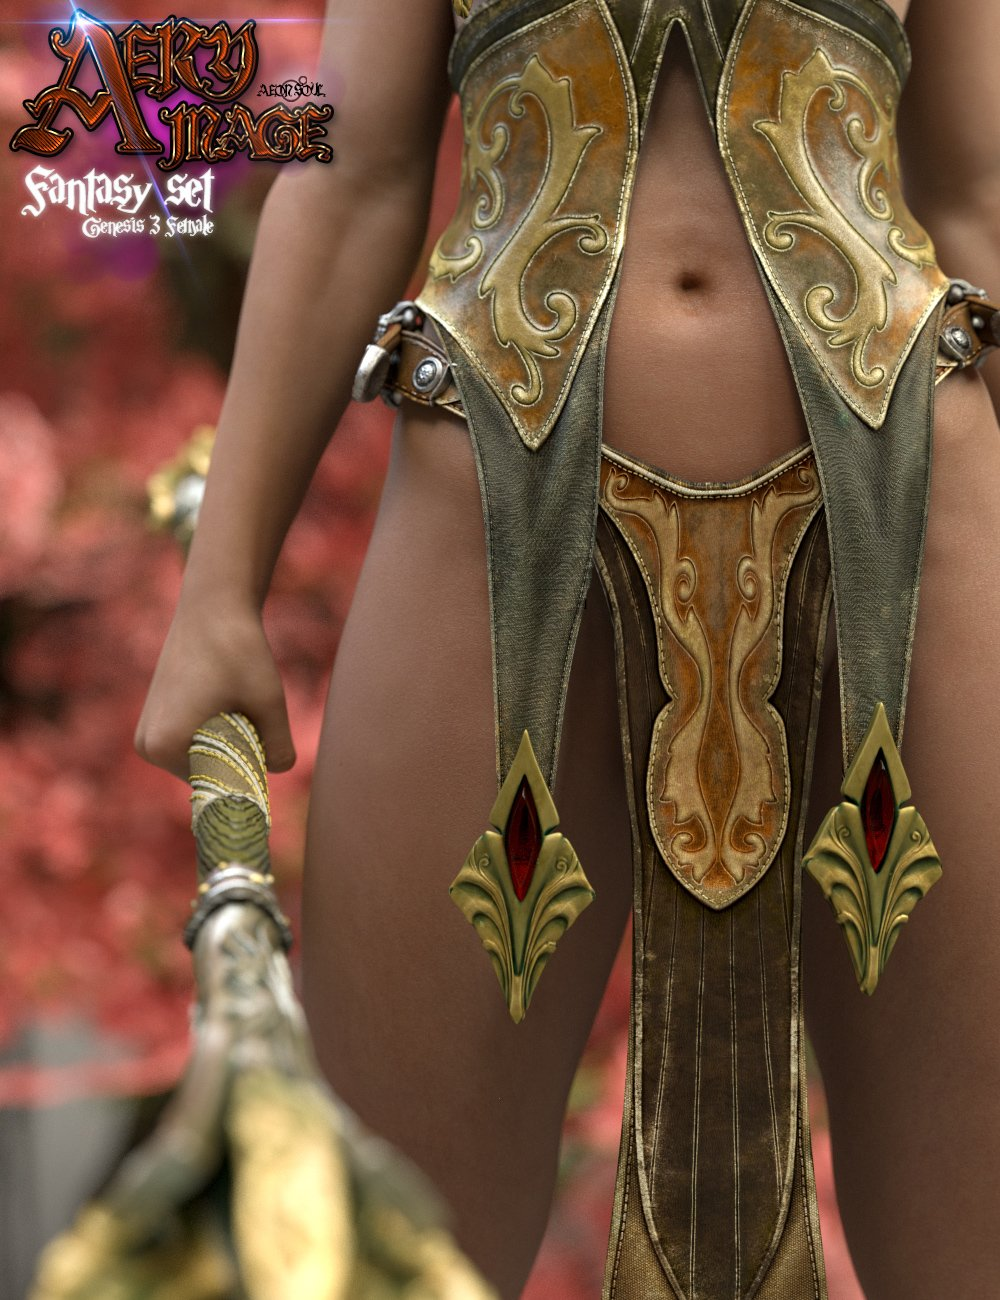 Aery Mage for Genesis 3 Female(s) by: Aeon Soul, 3D Models by Daz 3D